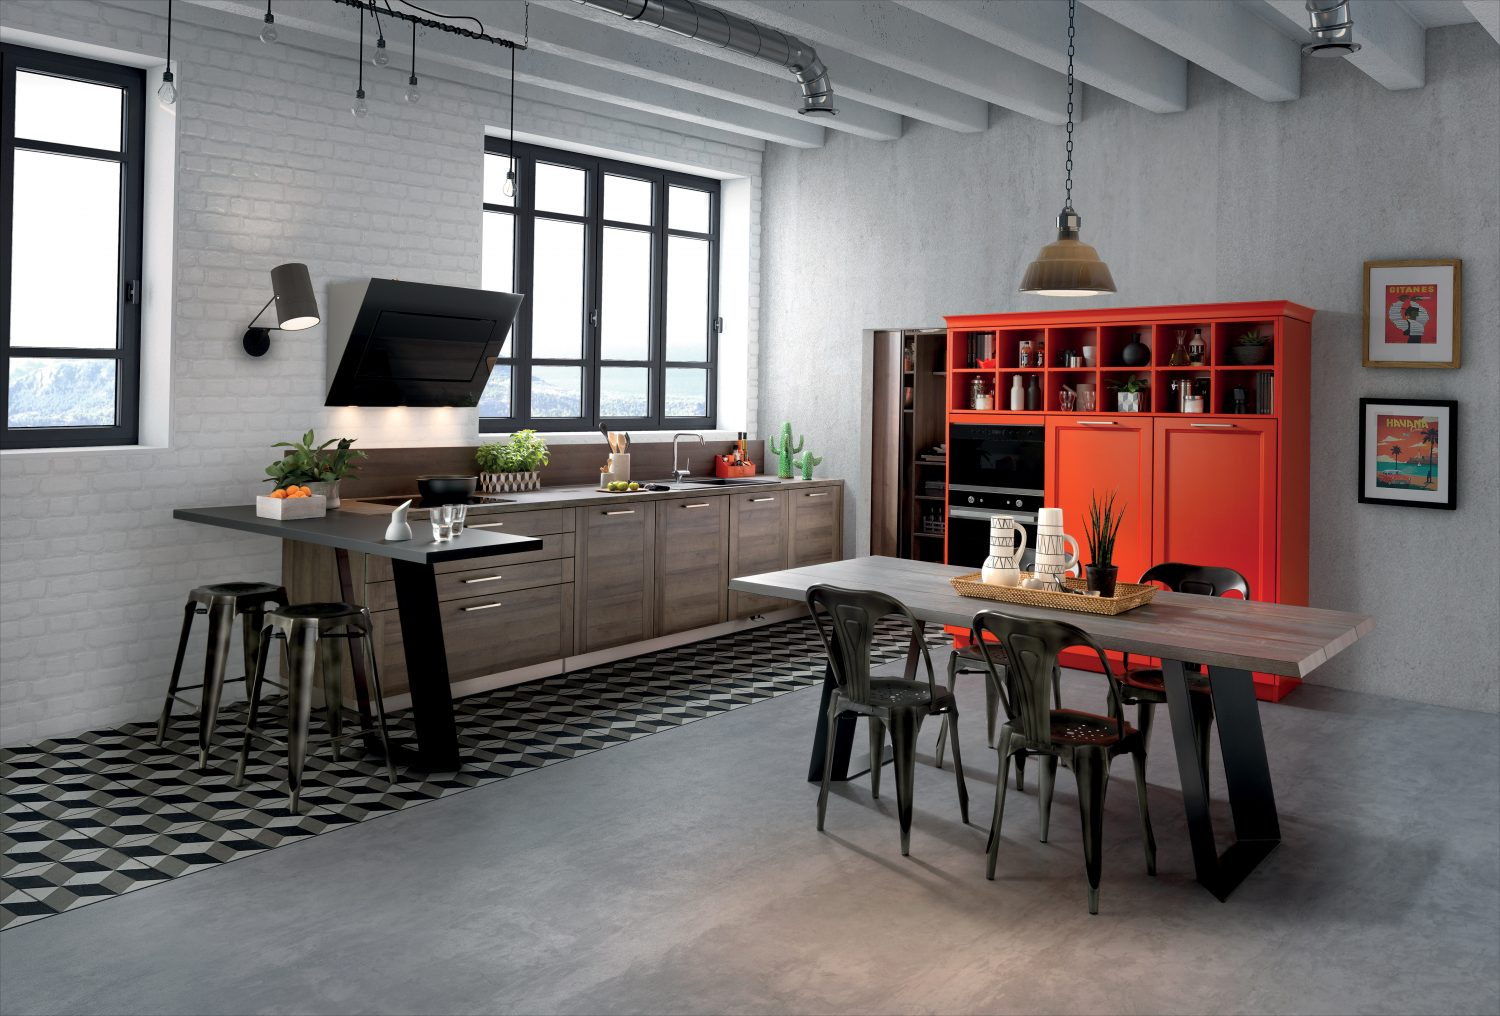 Schmidt Chic Workshop from the Designer Line collection. Built in a former industrial workshop for the shoot, showing the practical storage elements, including the bespoke orange cupboard, with chairs and stools and a designer bar counter. These units are from the Groove range (Tabacco in the photo) and the Bolero range (Tangerine). The laminate worktops are in Tabacco and Nano Black. Kitchens from £10,000. 01892 547132 tunbridge-wells.home-design.schmidt